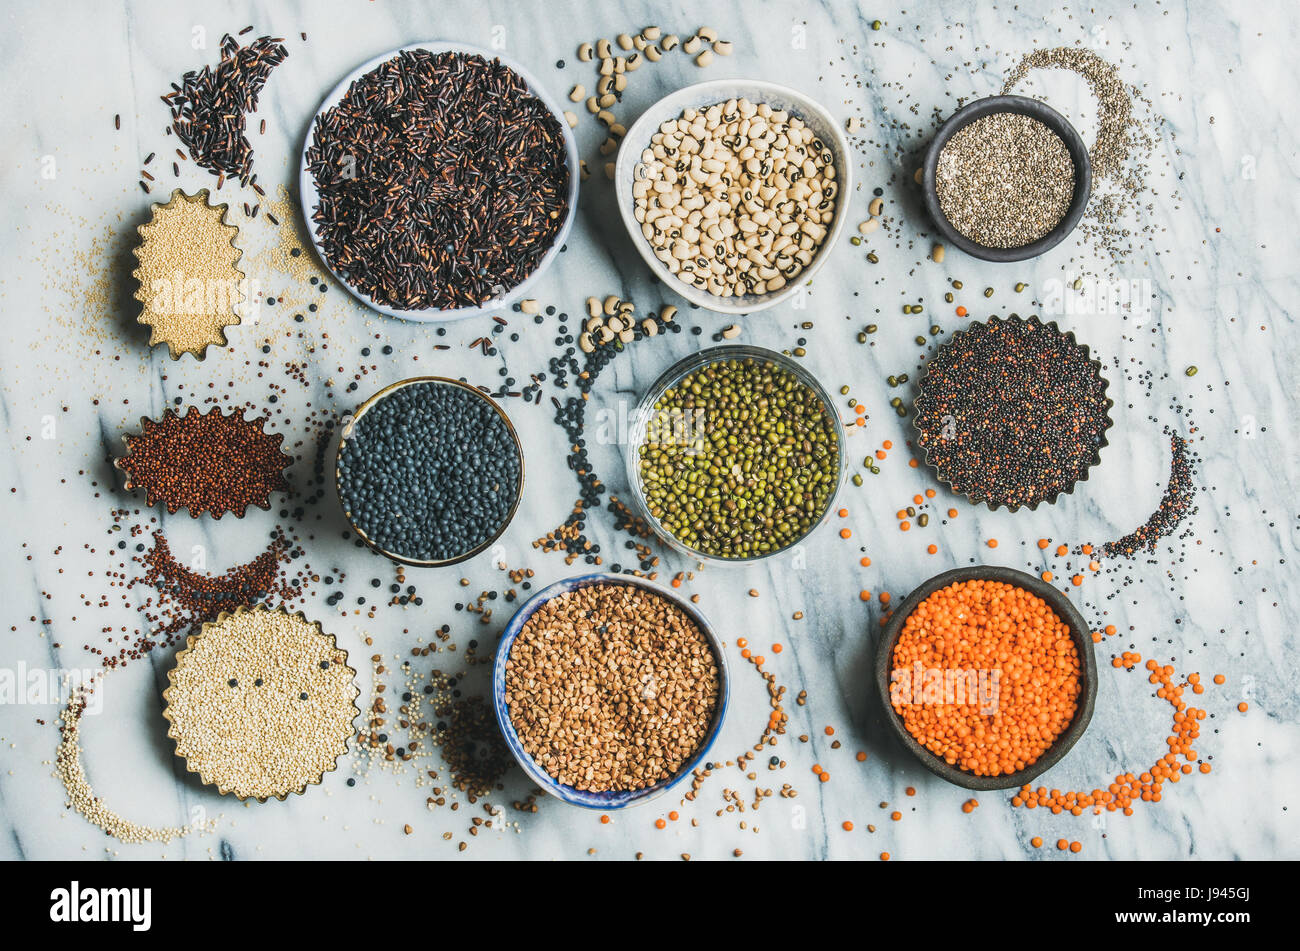 Variety of raw grains, beans, cereals over marble background - Stock Image